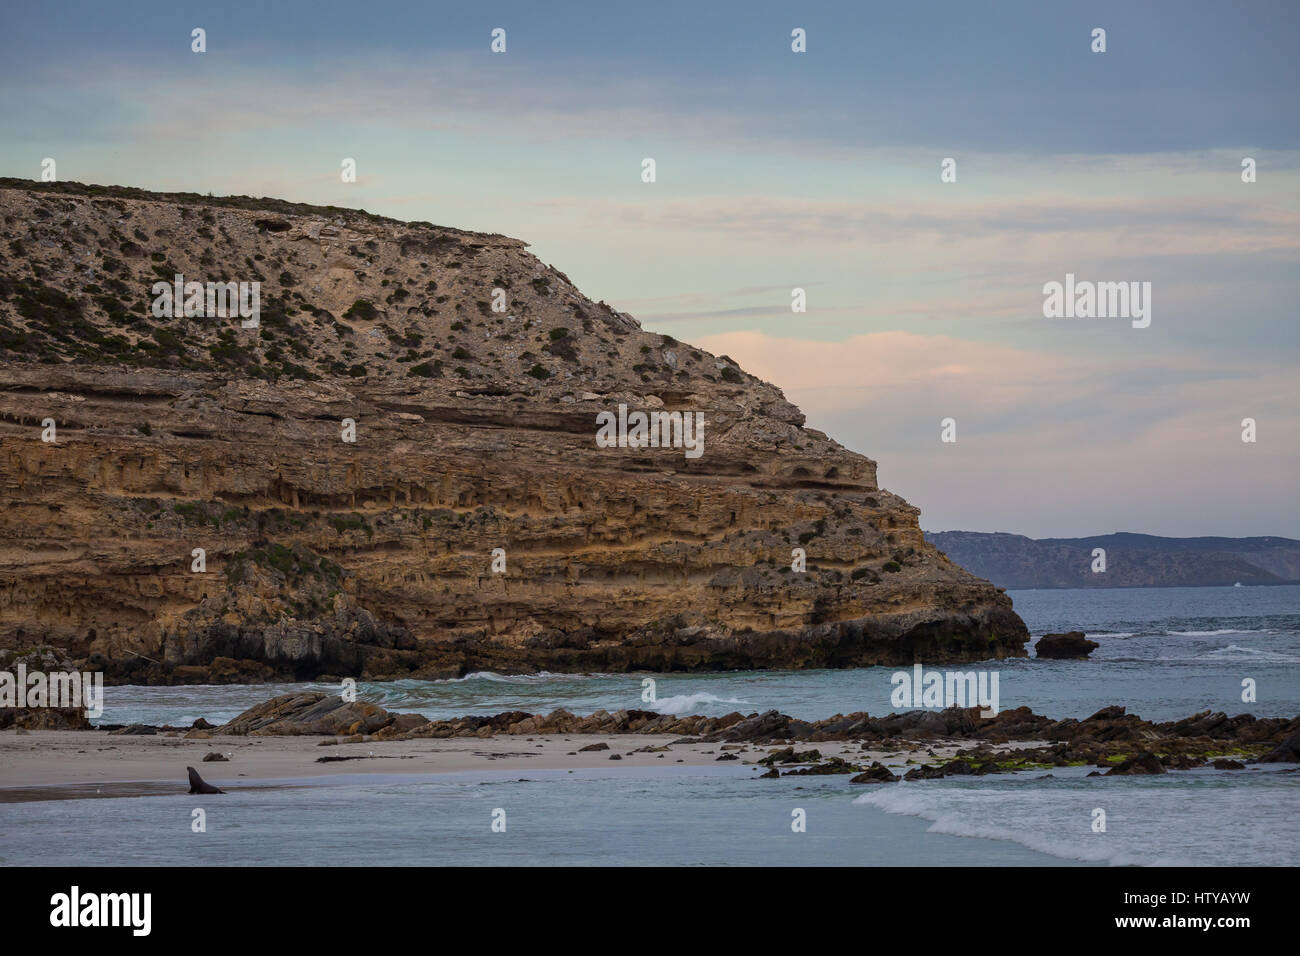 Seal Bay - Kangaroo Island, South Australia - Stock Image